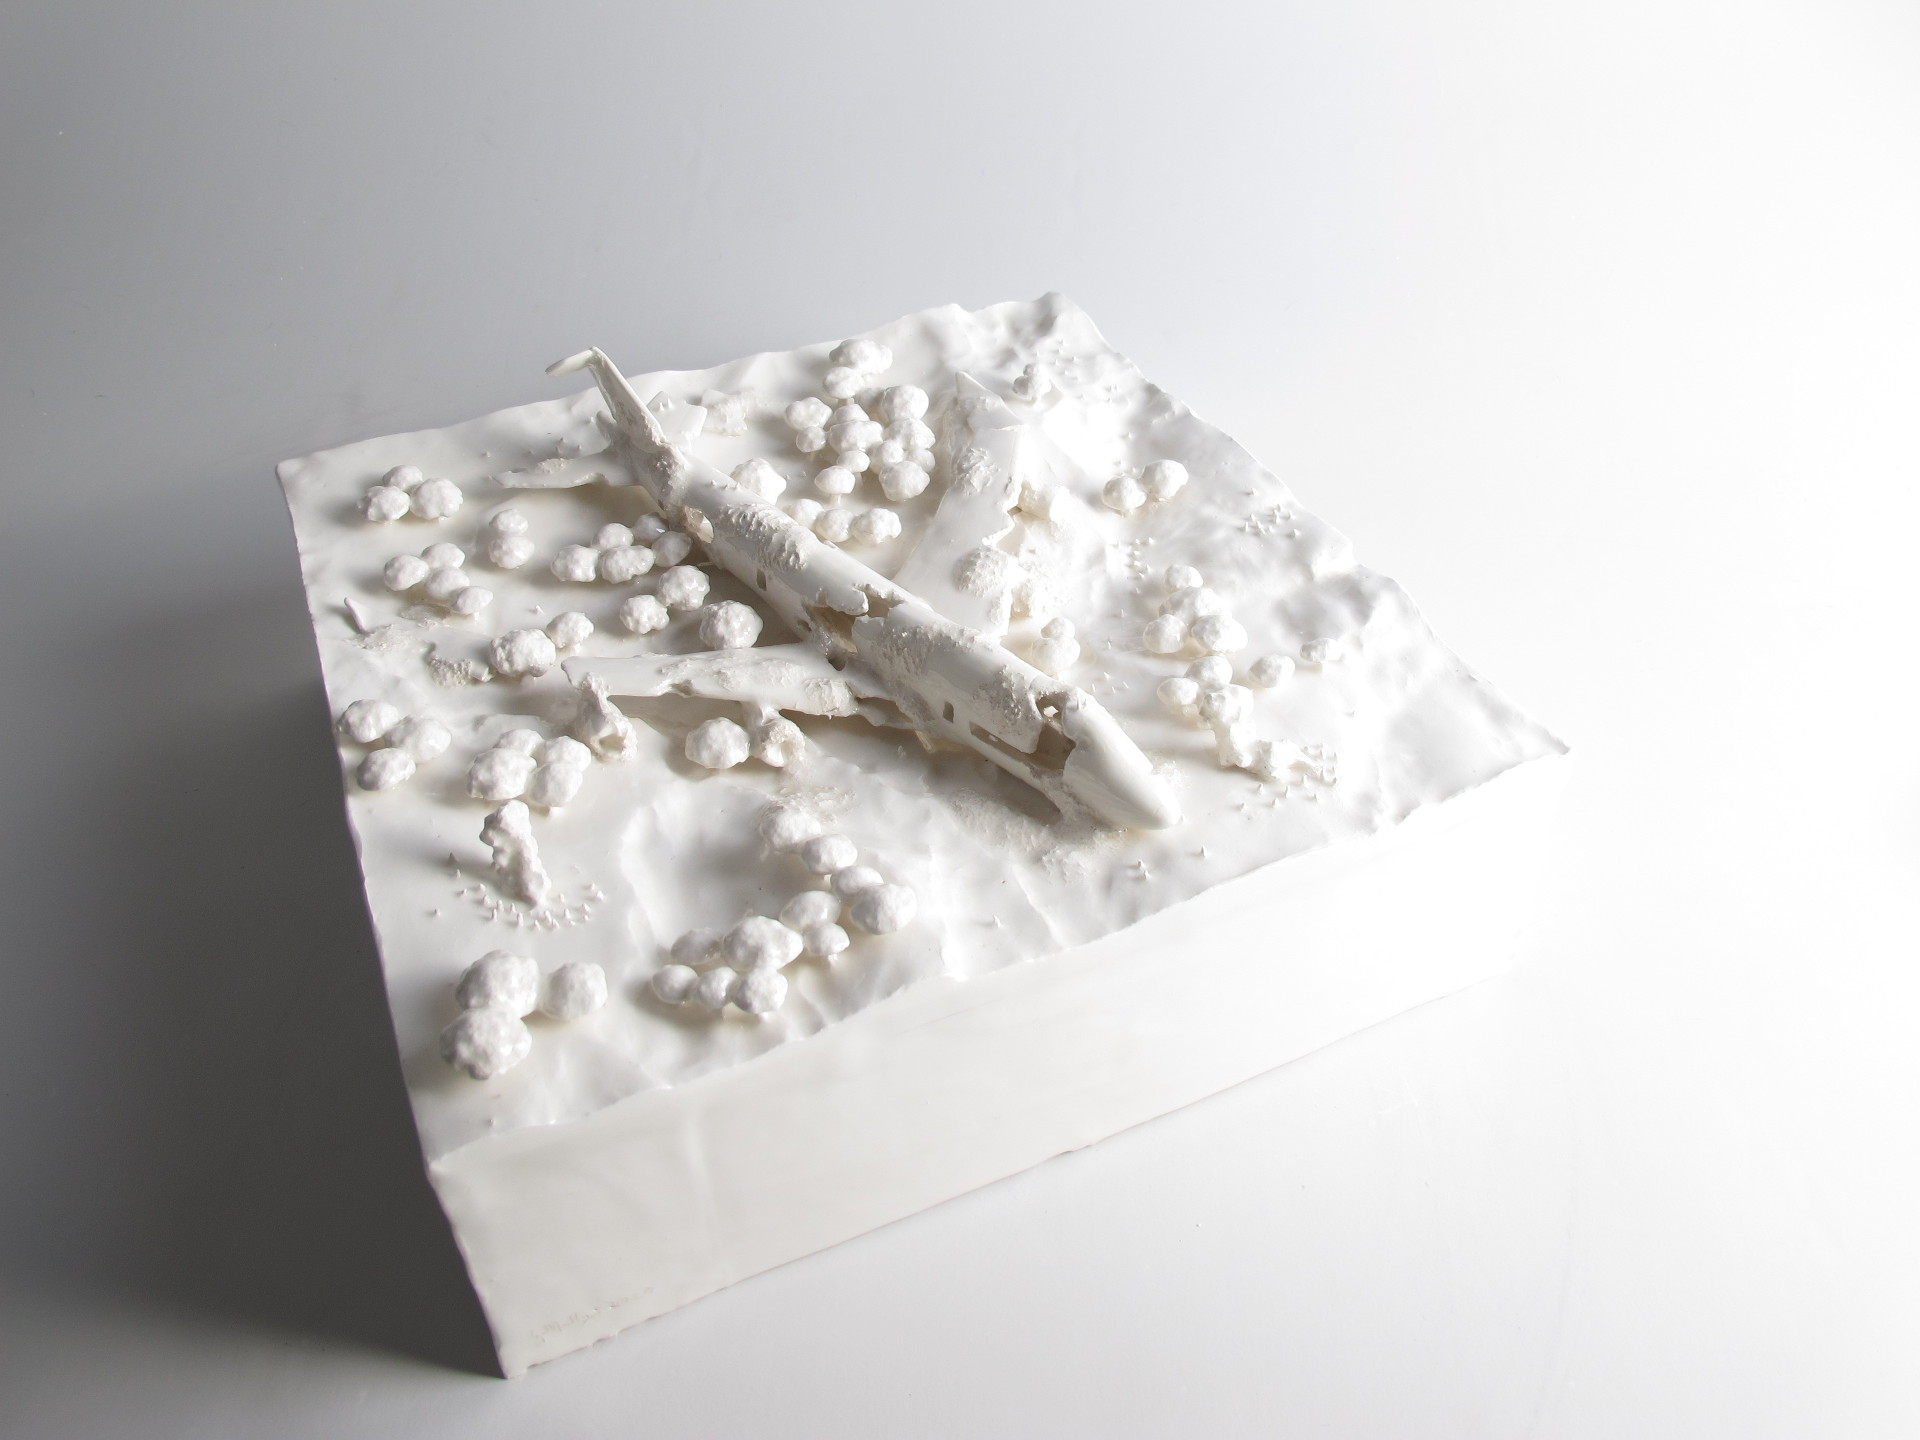 Wreckage Gabriele Mallegni 2020 conteporary sculpture